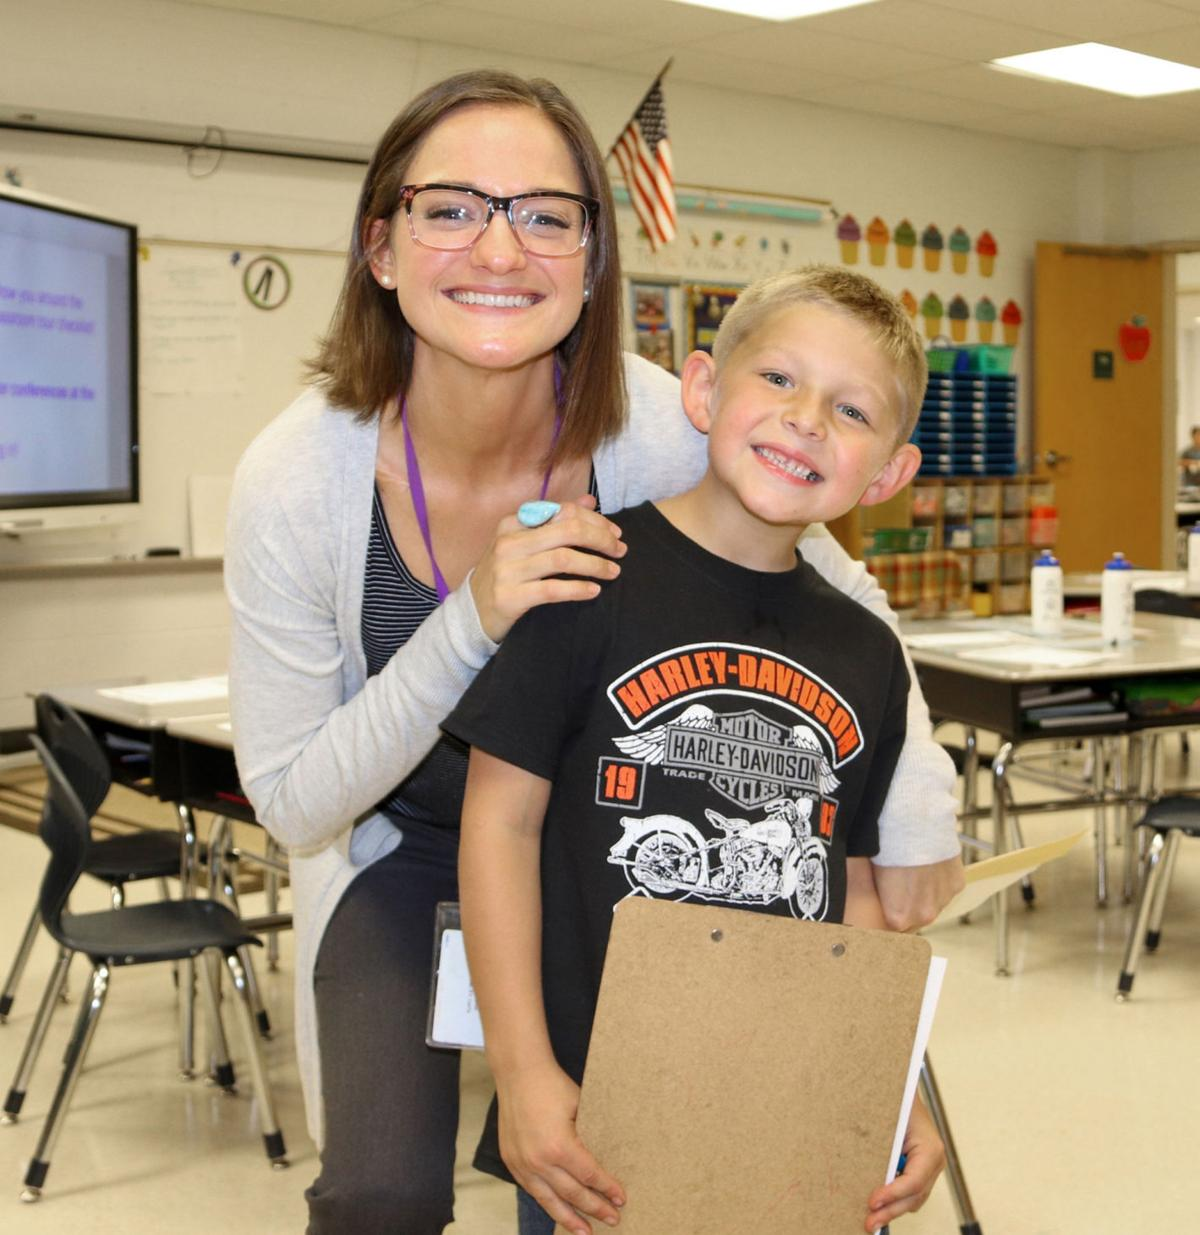 Hannibal students display work at open house events